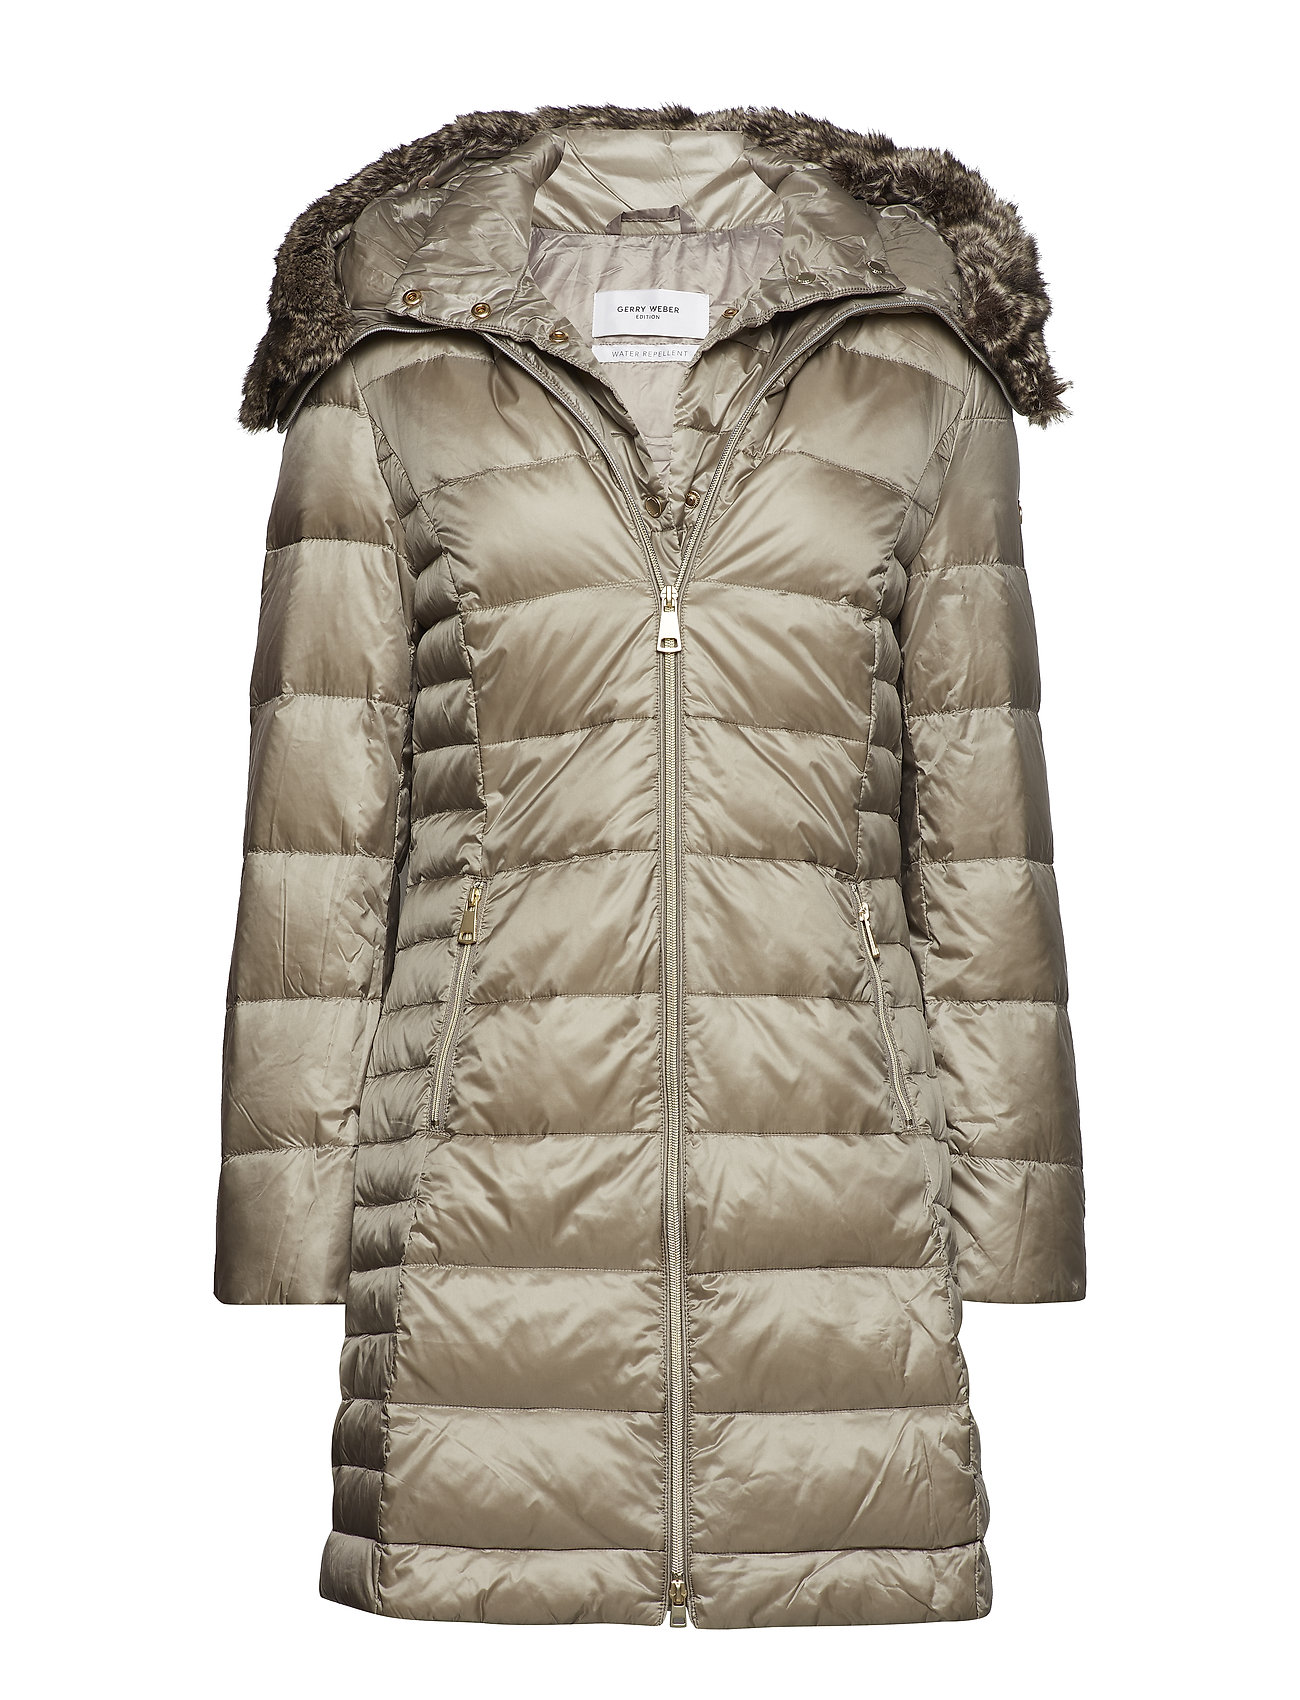 Outdoor Jacket No Wo (Berber) (£115) - Gerry Weber Edition -  6a0b18201ae2